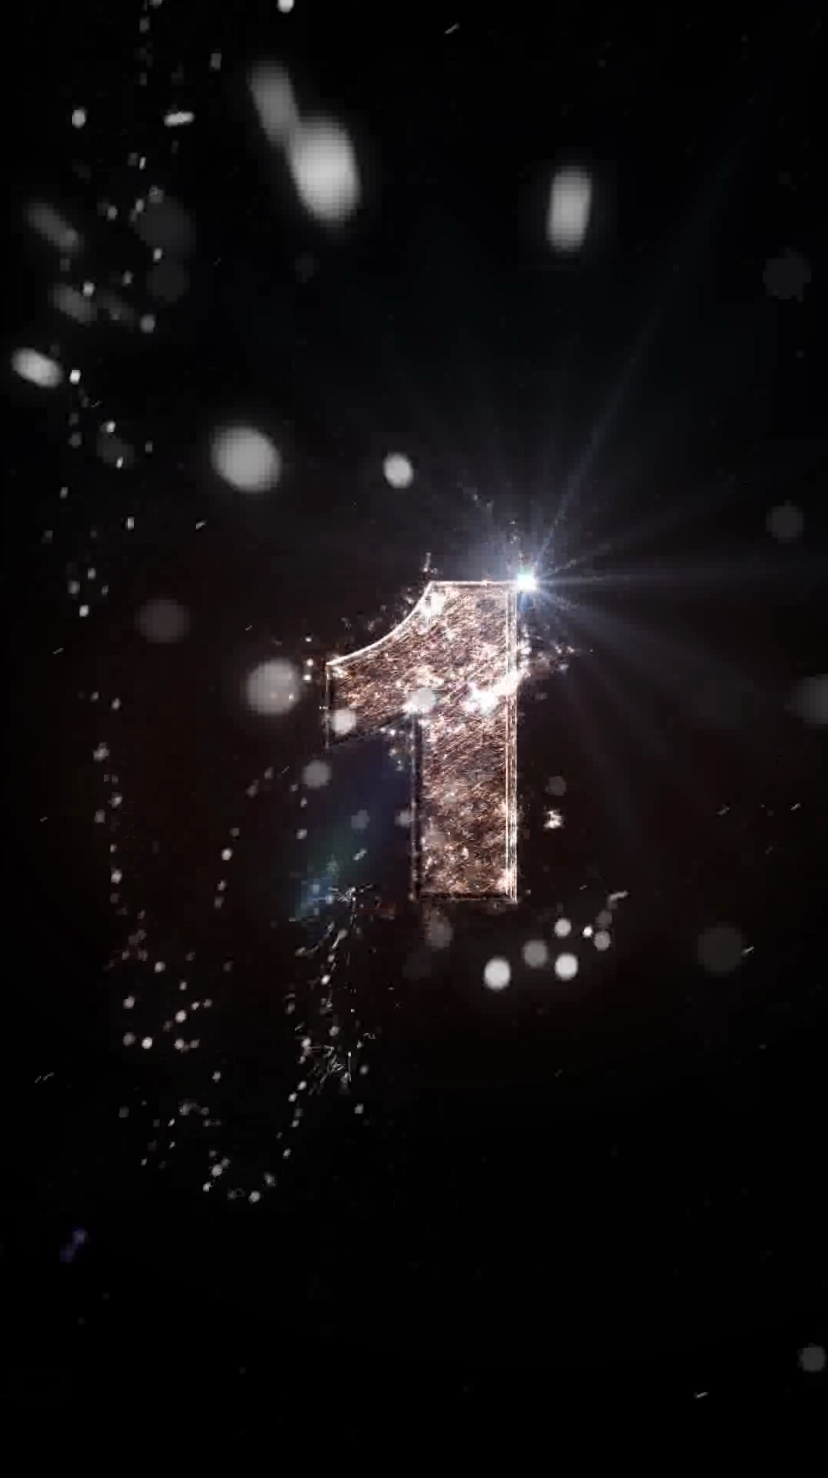 Countdown Particle1 (4to1)